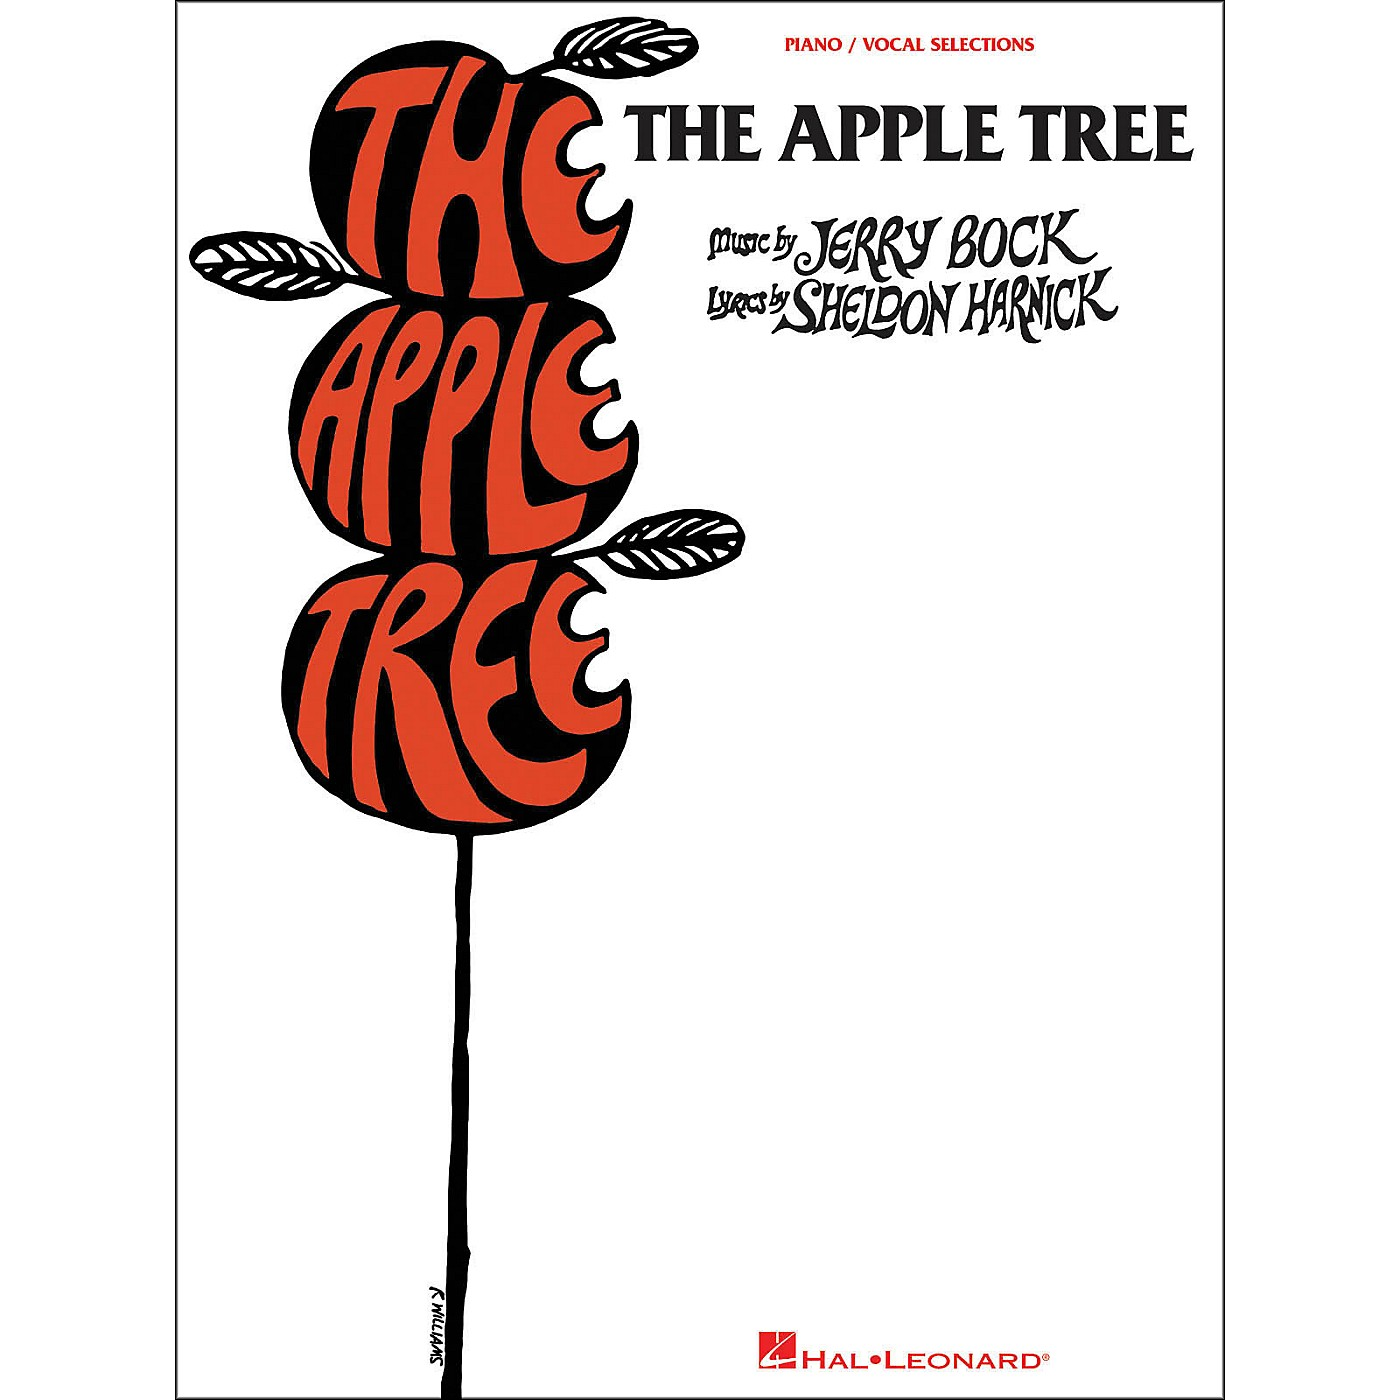 Hal Leonard The Apple Tree arranged for piano, vocal, and guitar (P/V/G) thumbnail